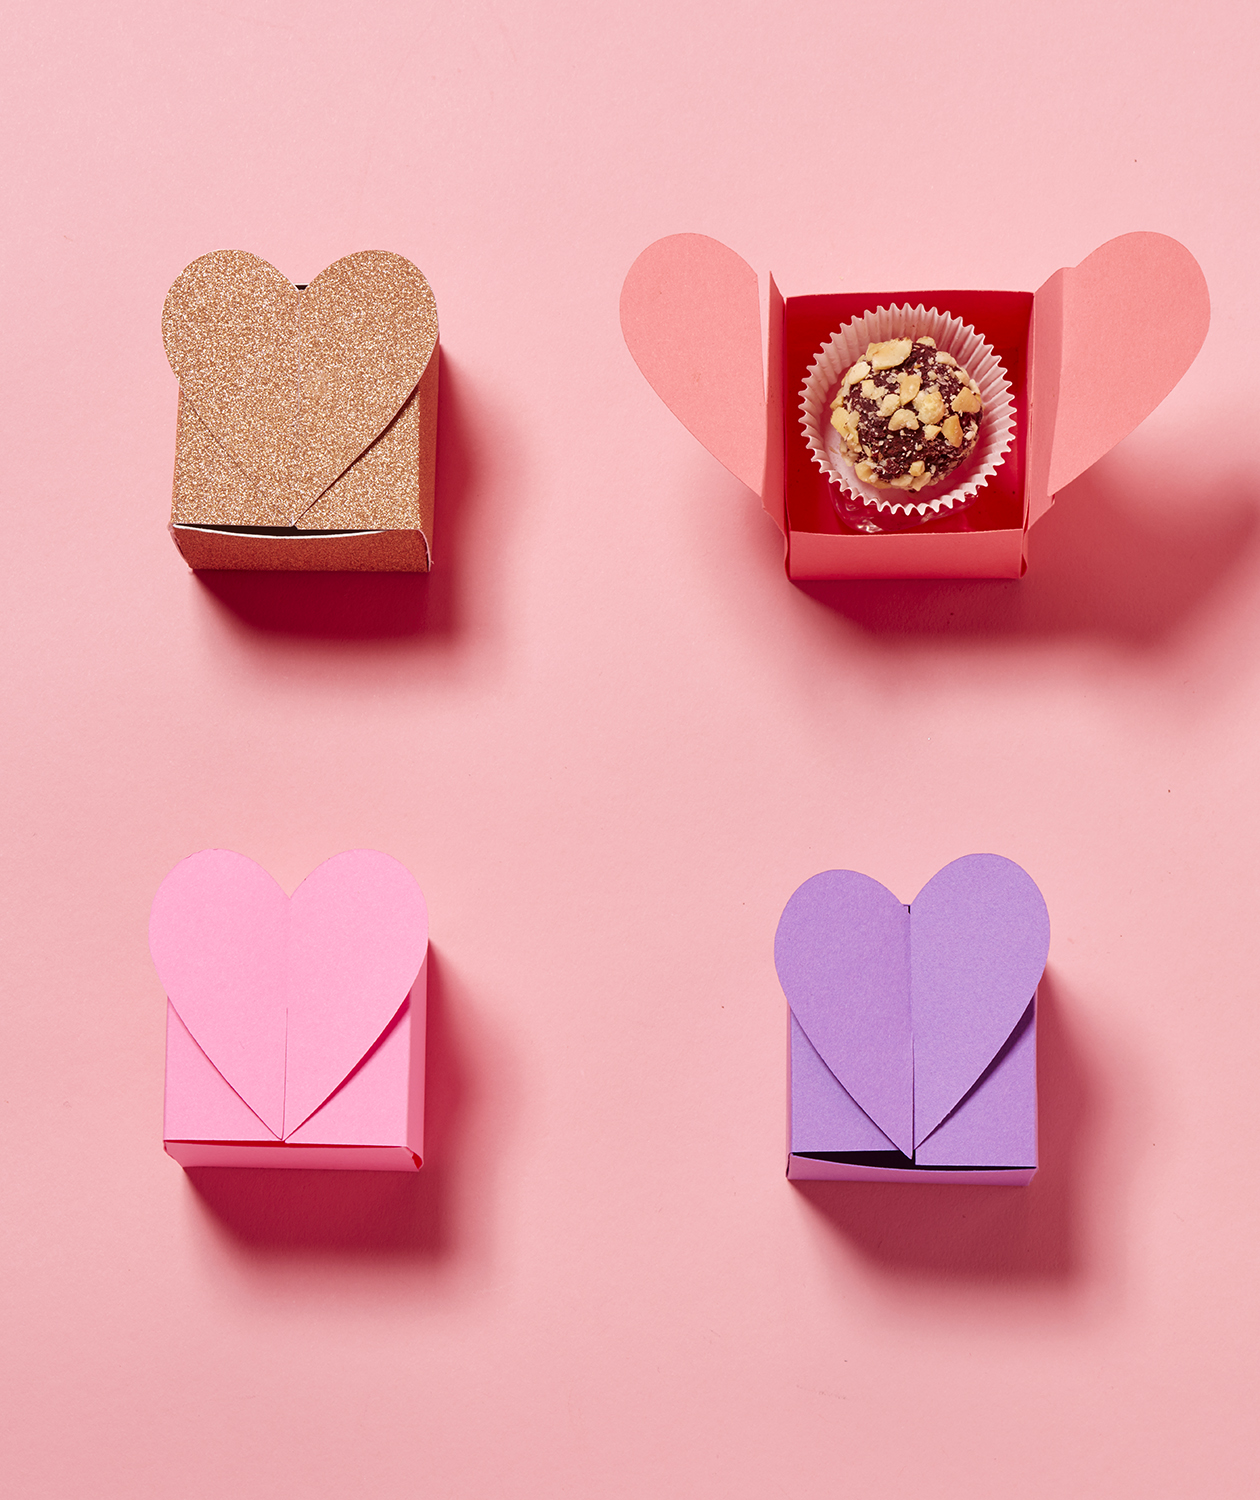 Valentine's day crafts - Heart Top Truffle Box